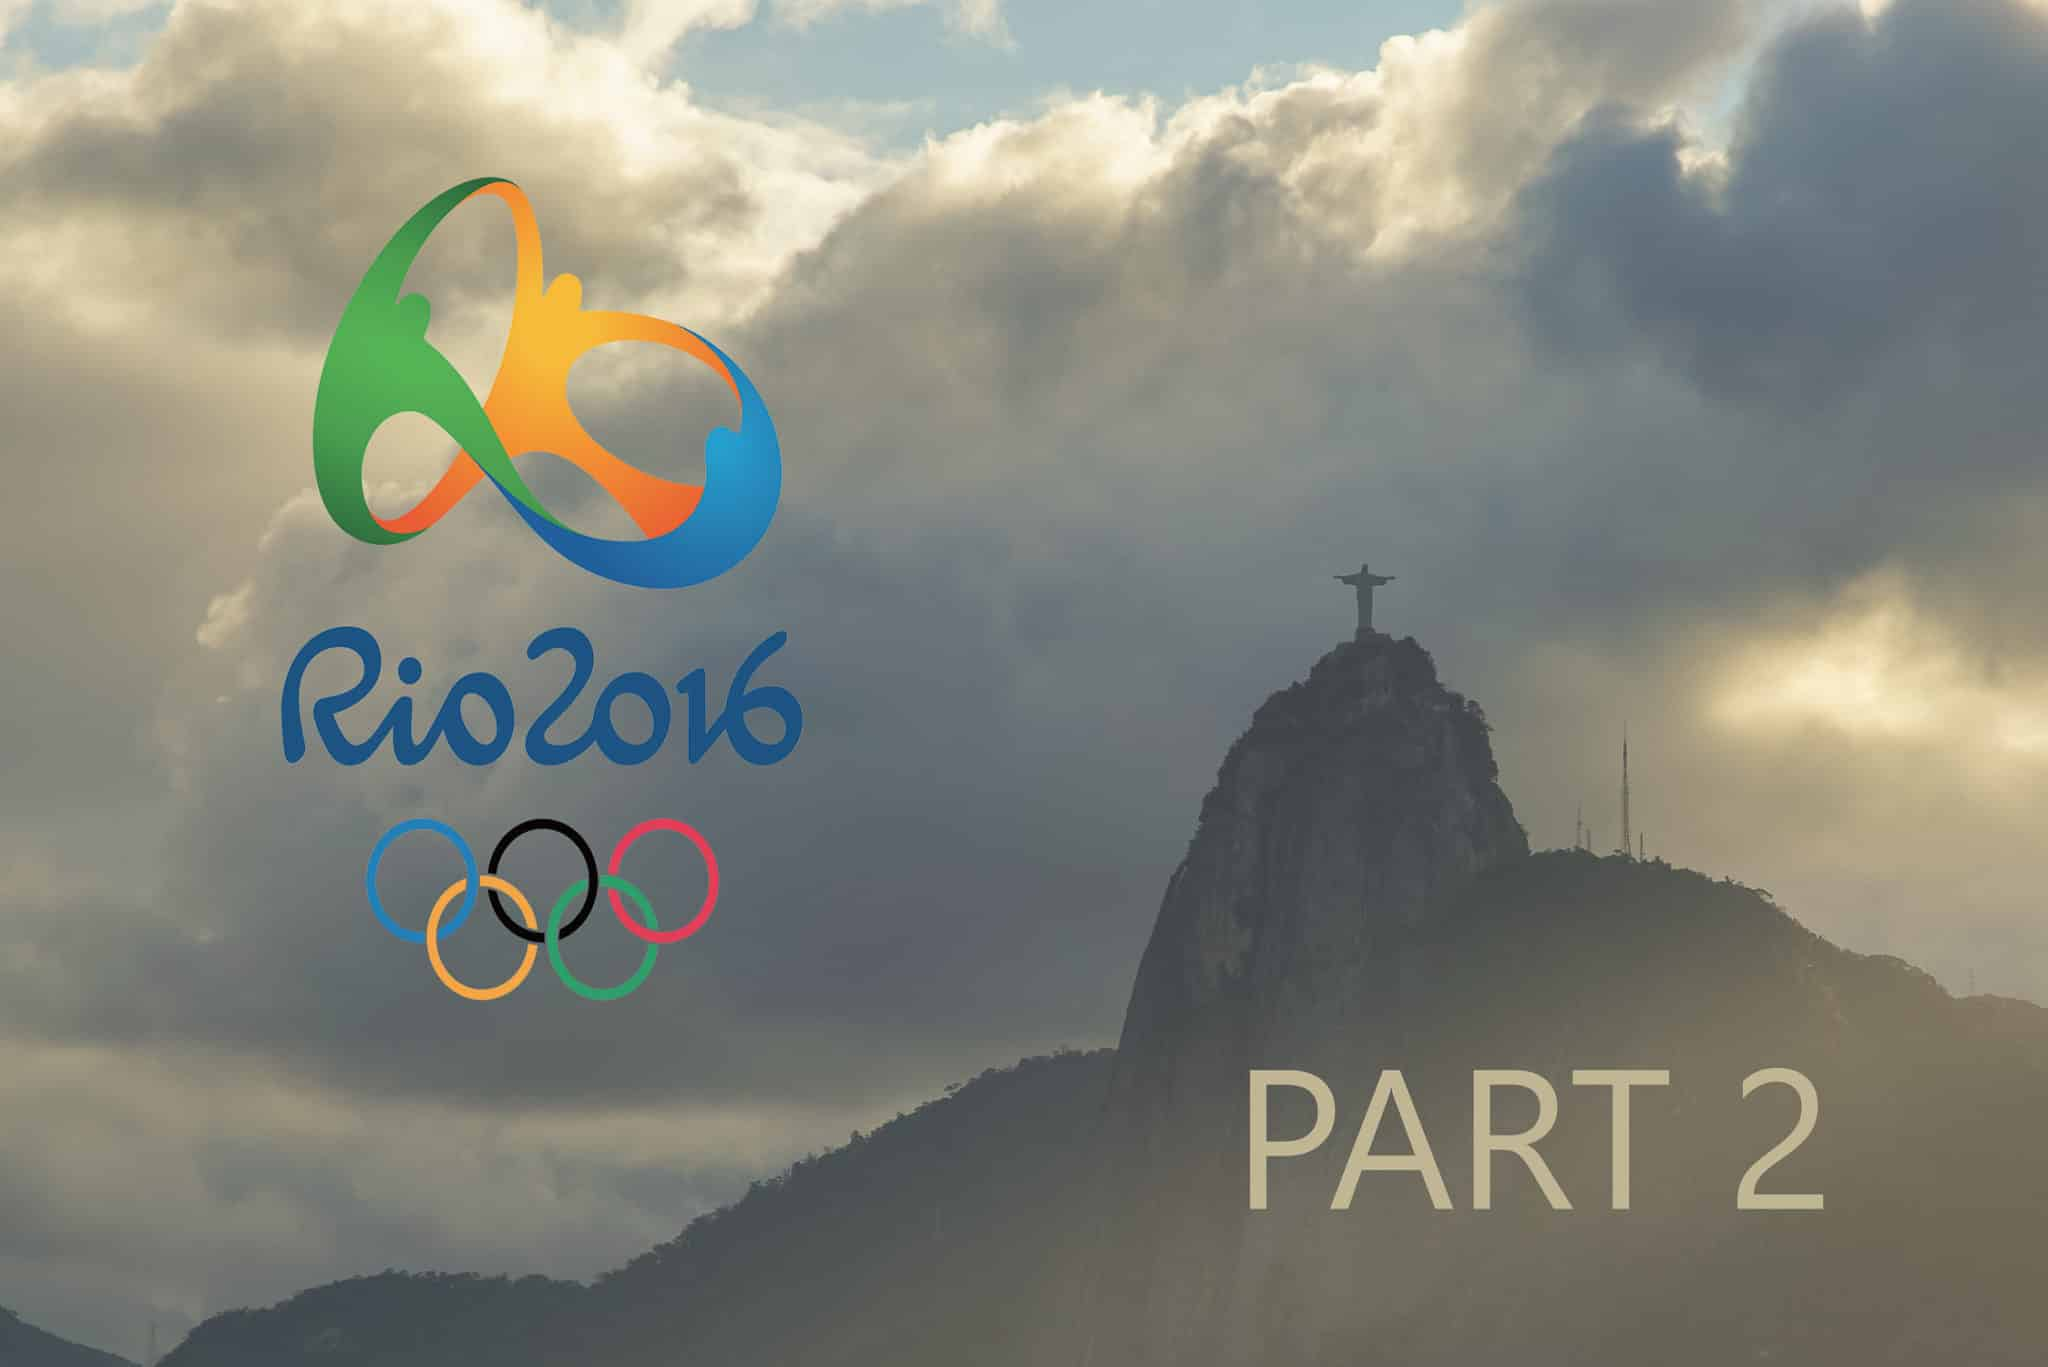 Rio 2016: A Trip of a Lifetime Part 2